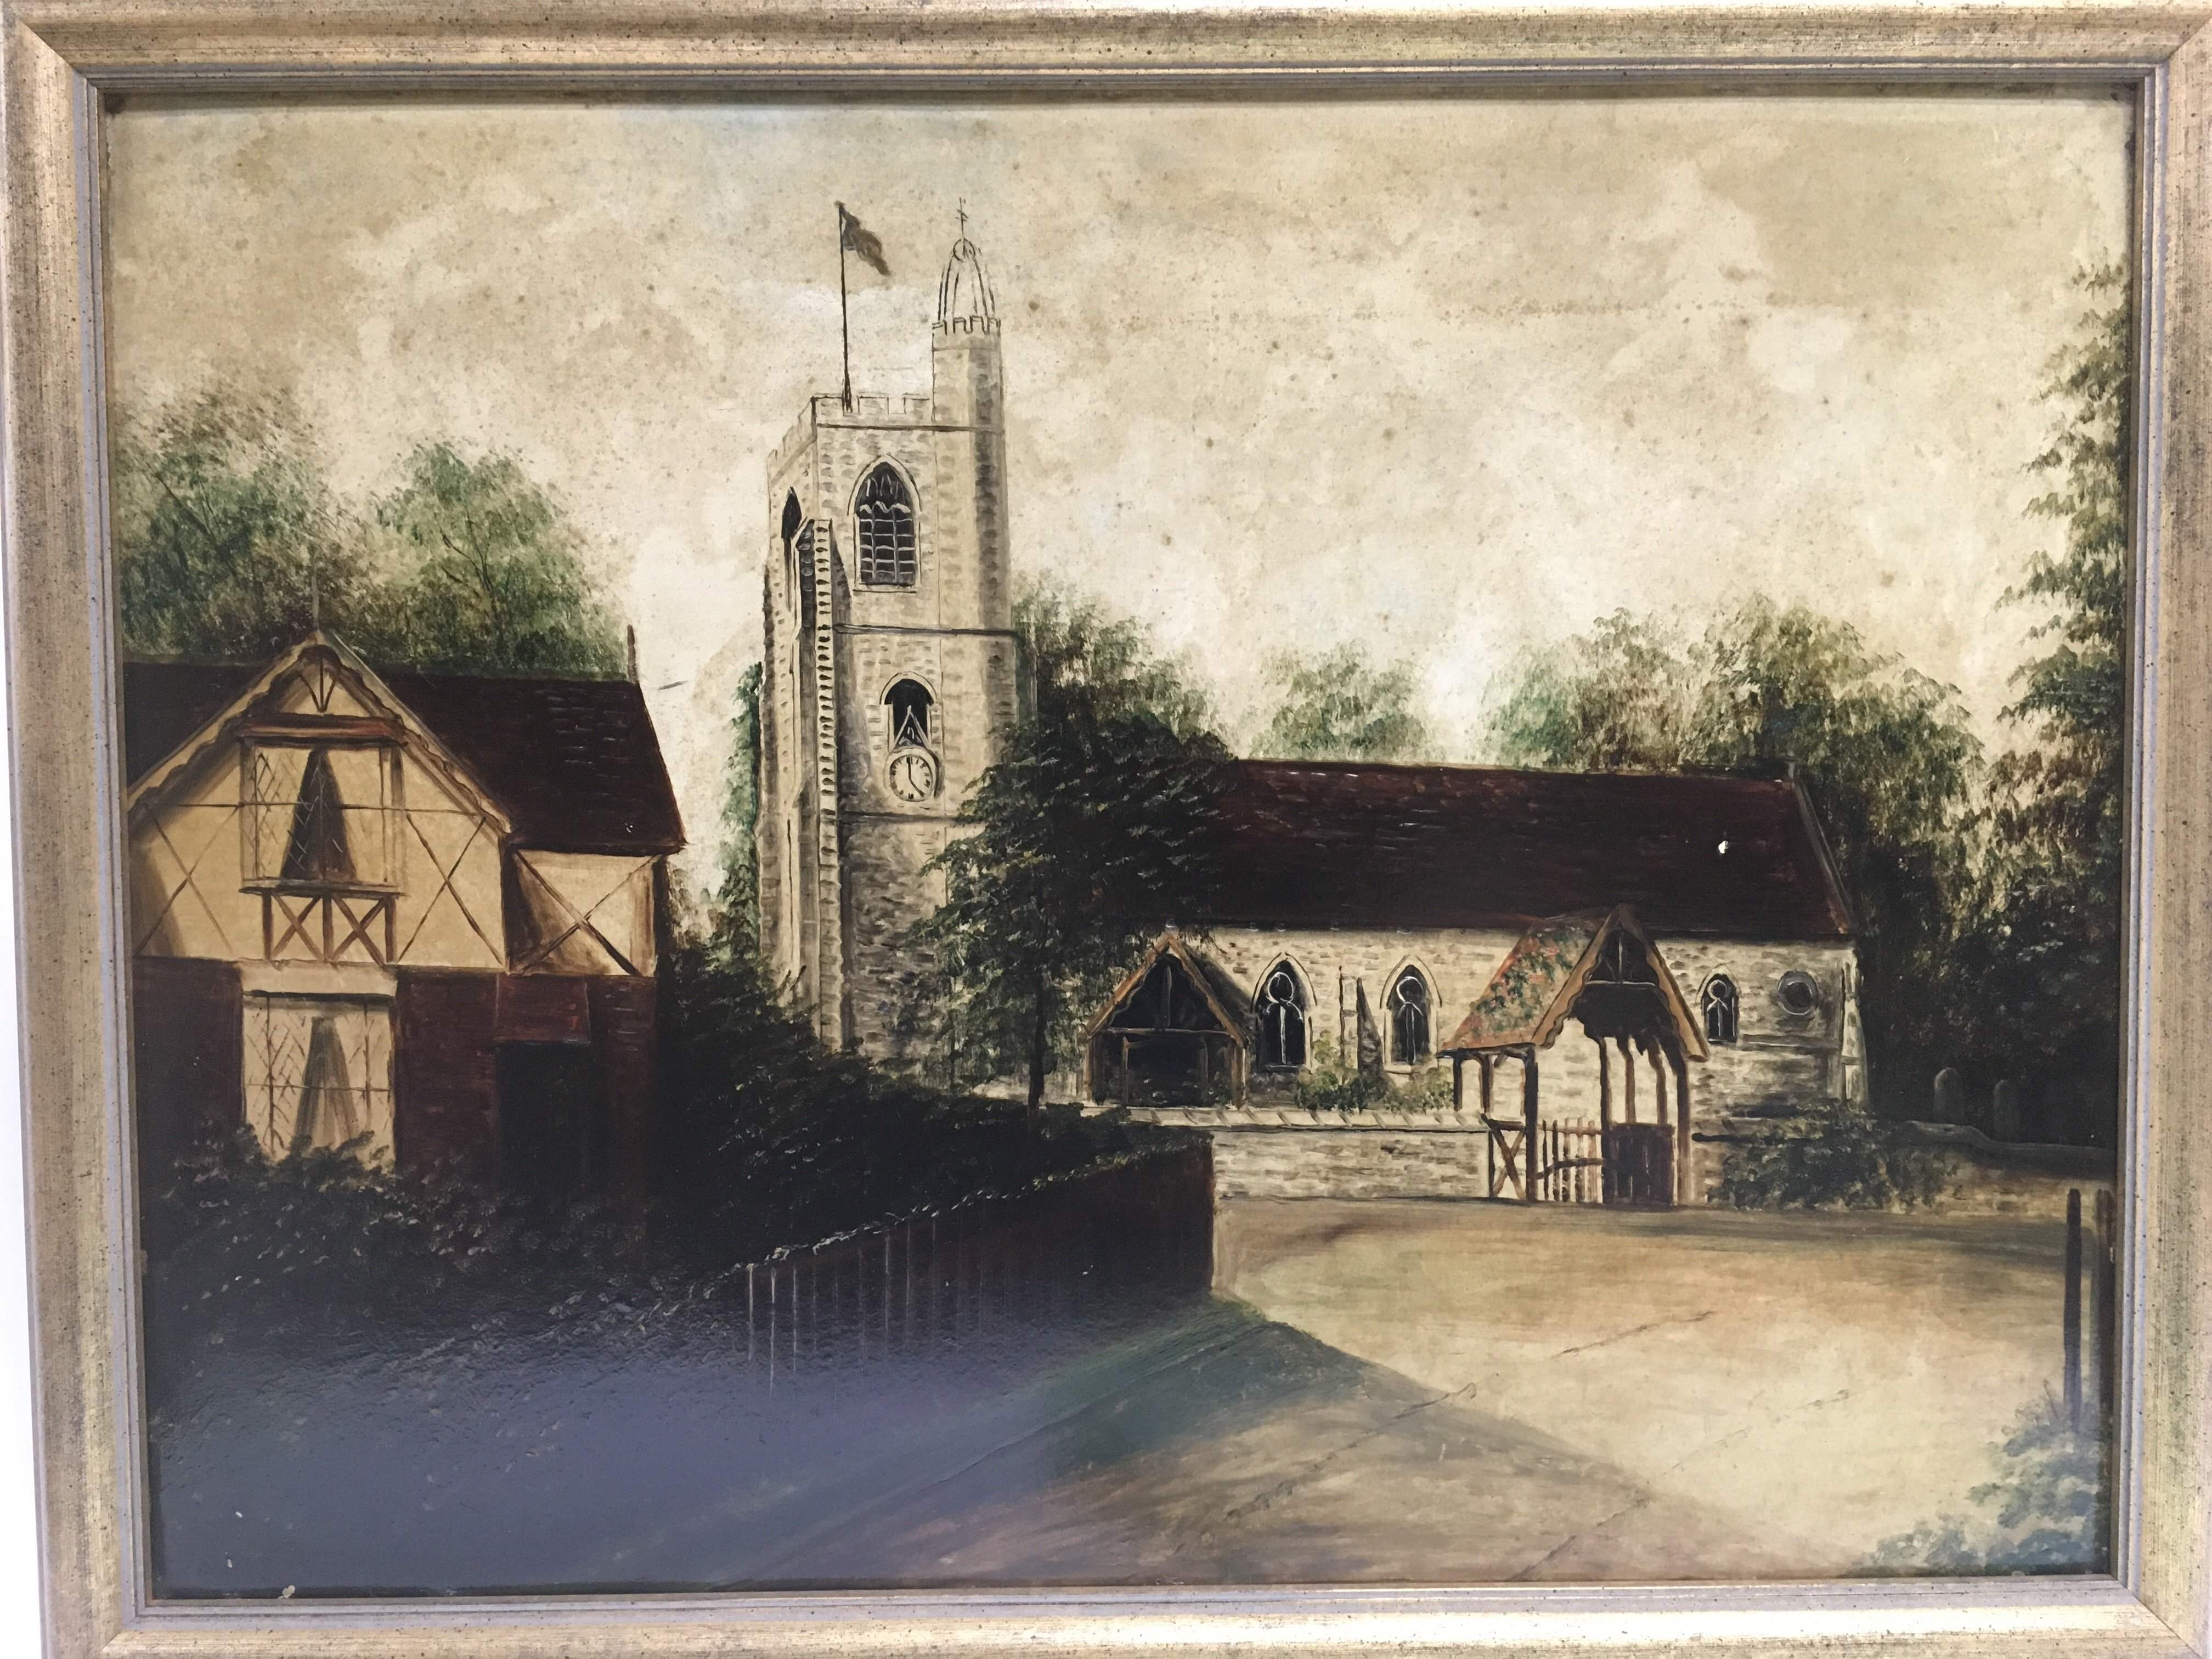 Lot 1238 - Two 19th Century oil on board paintings of churches, approx 68cm x 53.5cm.